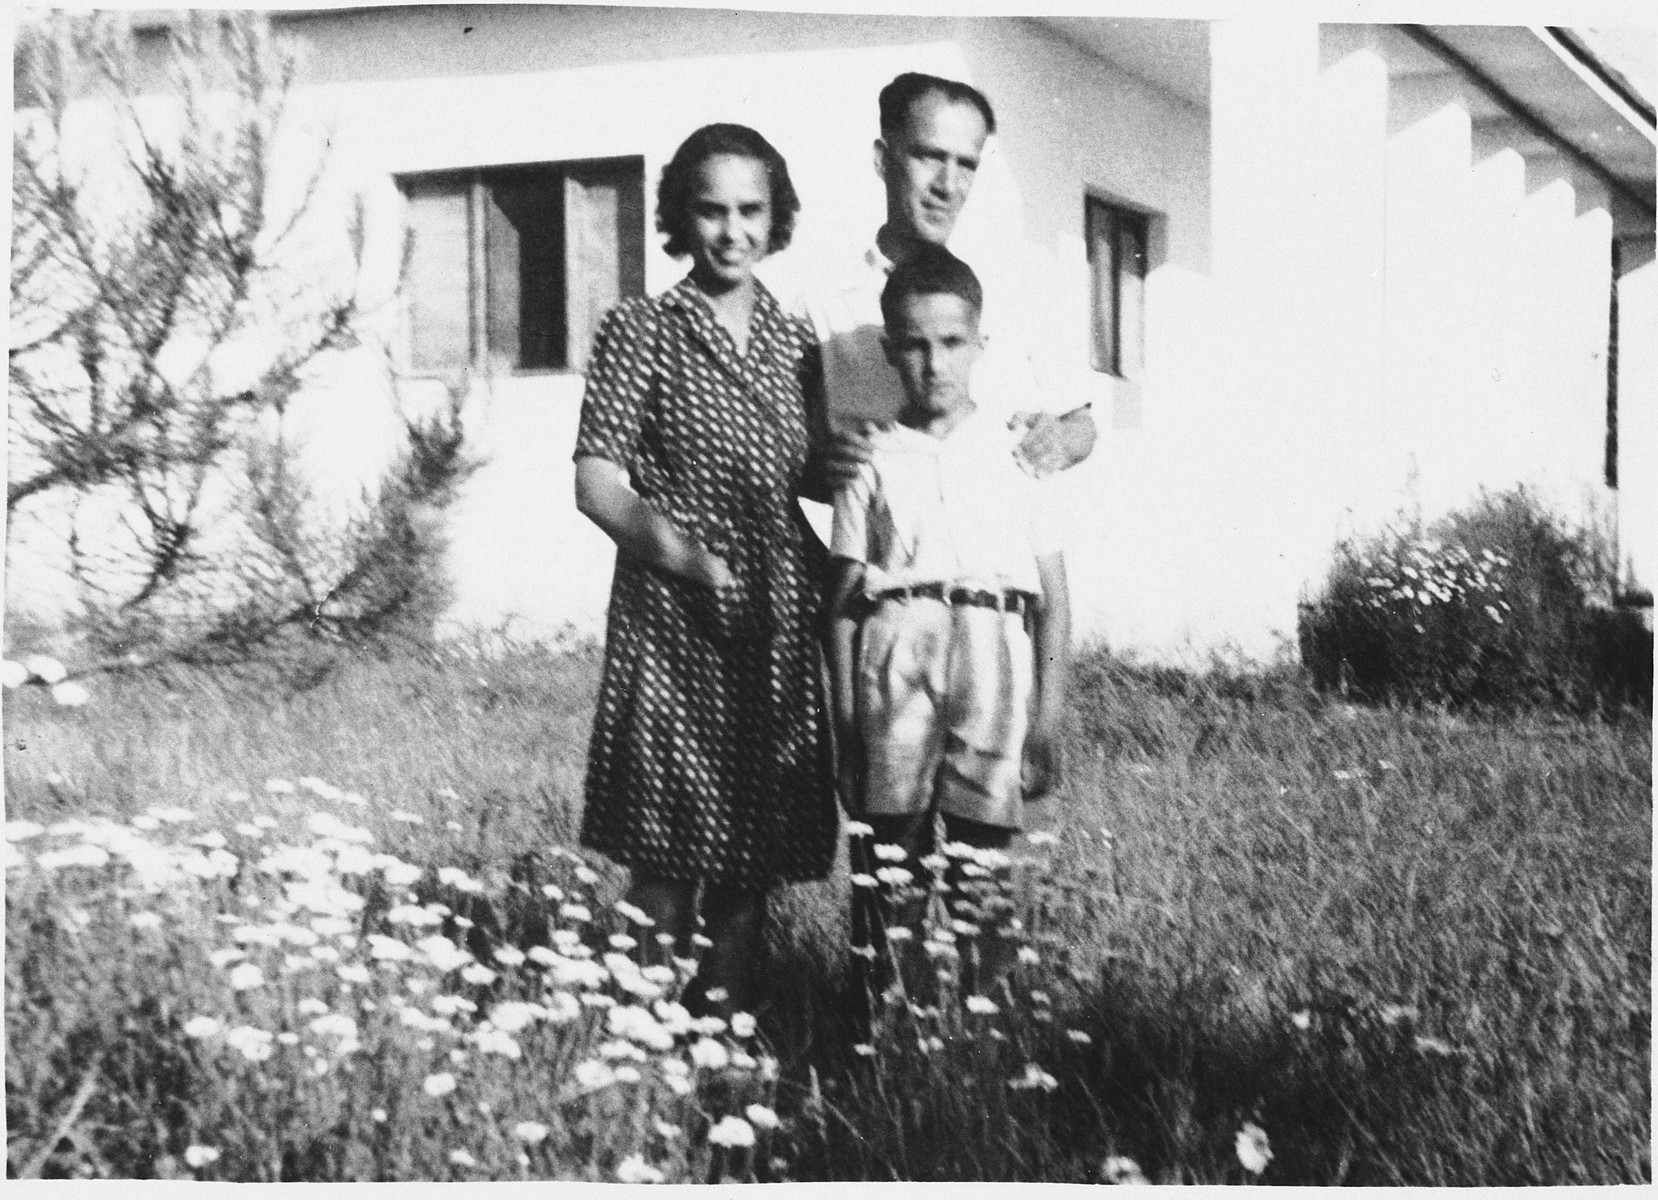 Portrait of a Yugoslavian Jewish family living in hiding in Kamza, Albania on the estate of Atif and Ganimet Toptani.  Pictured are Majer and Mimi Altarac with their son Jasa.